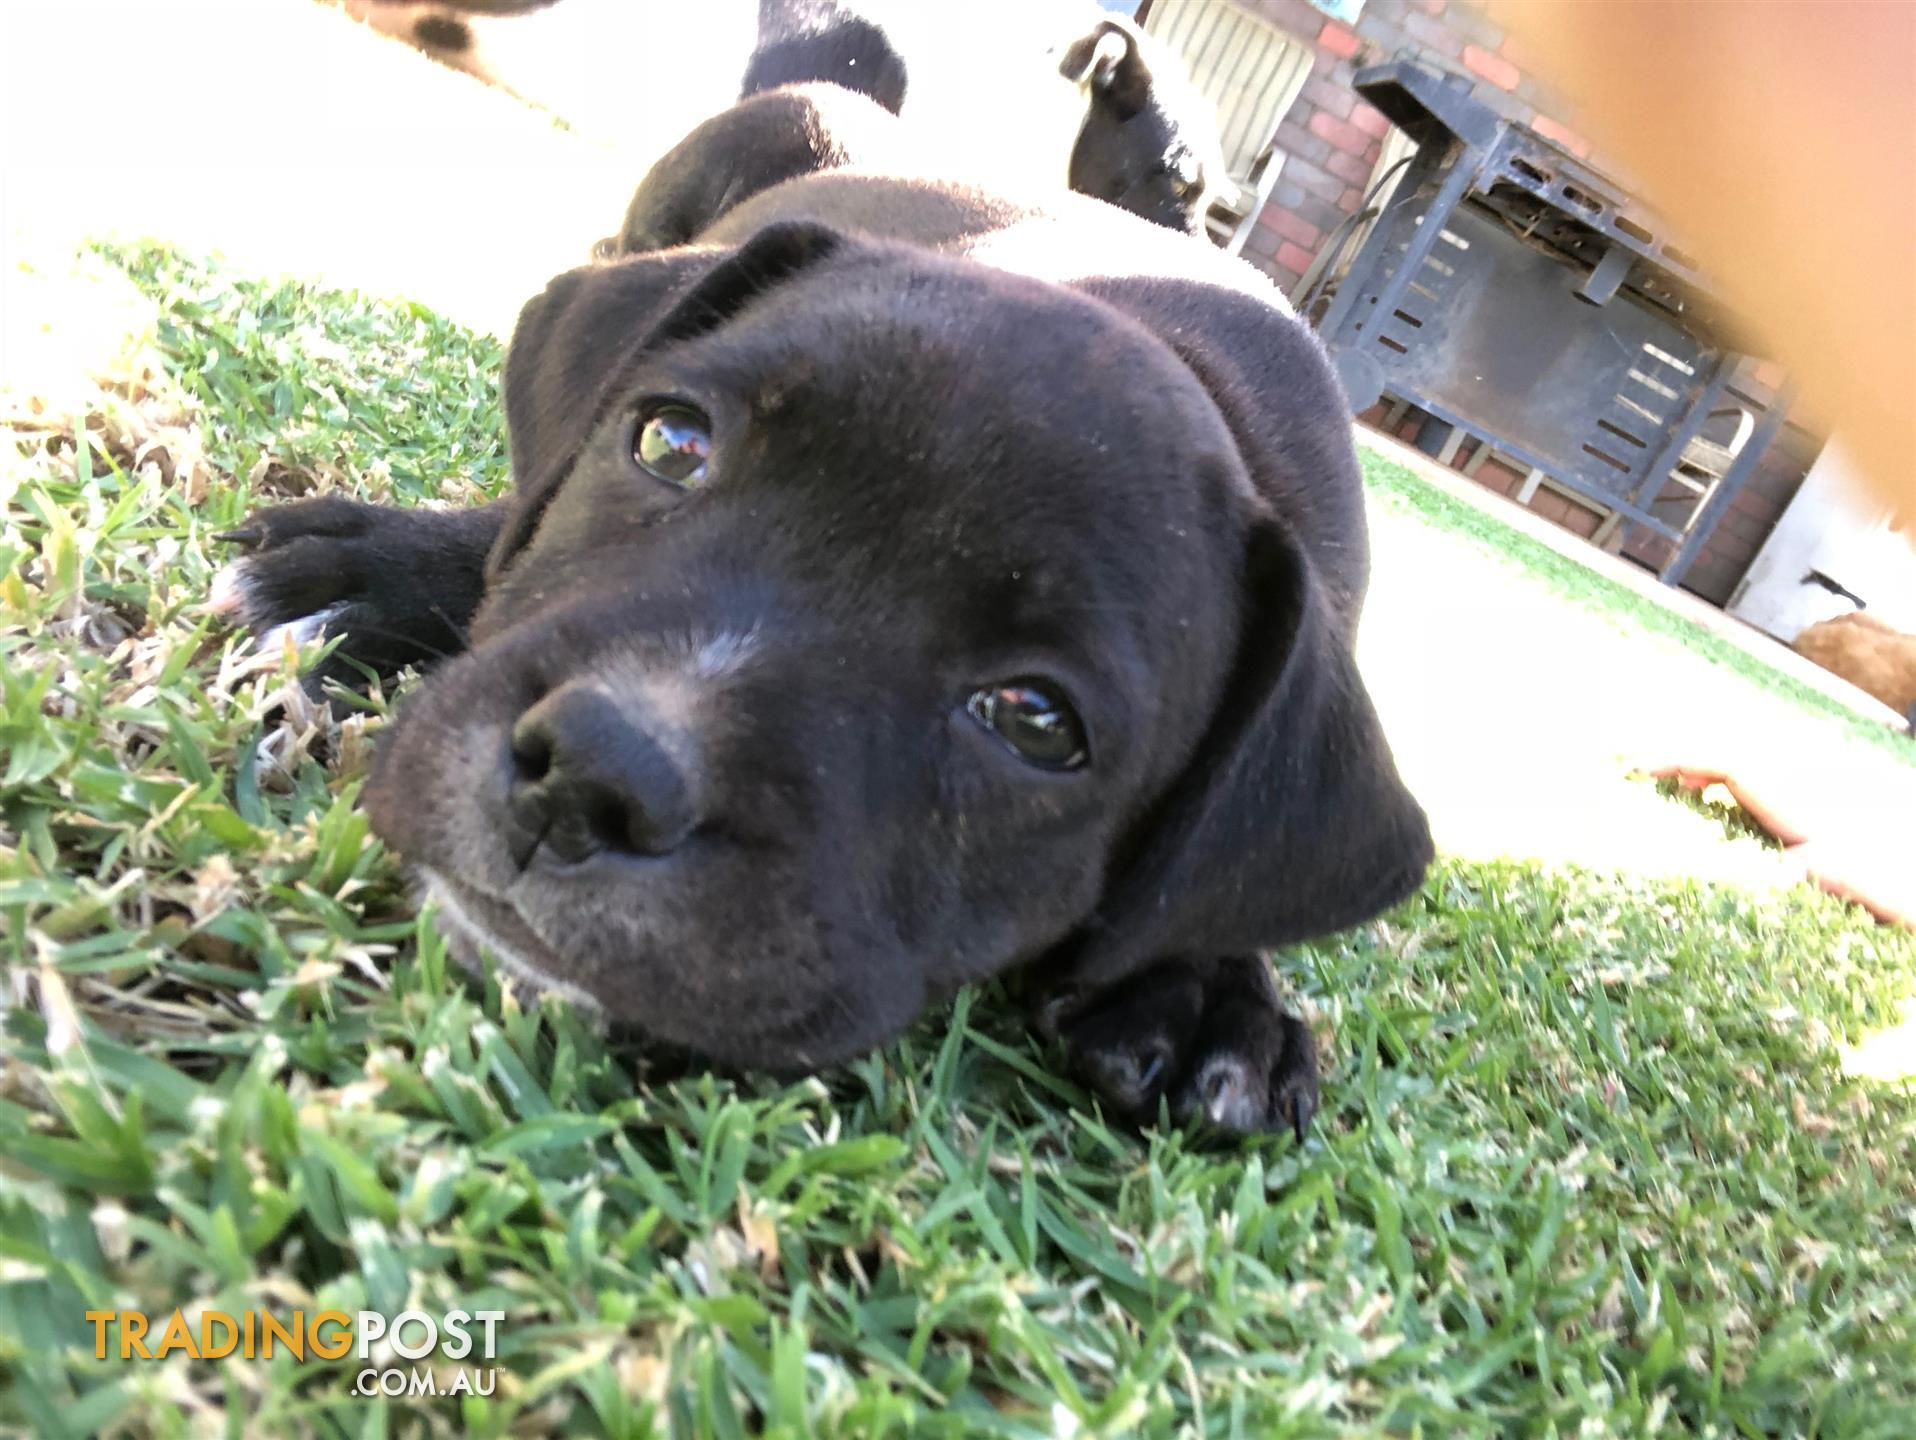 9 week old staffordshire terrier puppies for sale in echuca vic send message solutioingenieria Choice Image